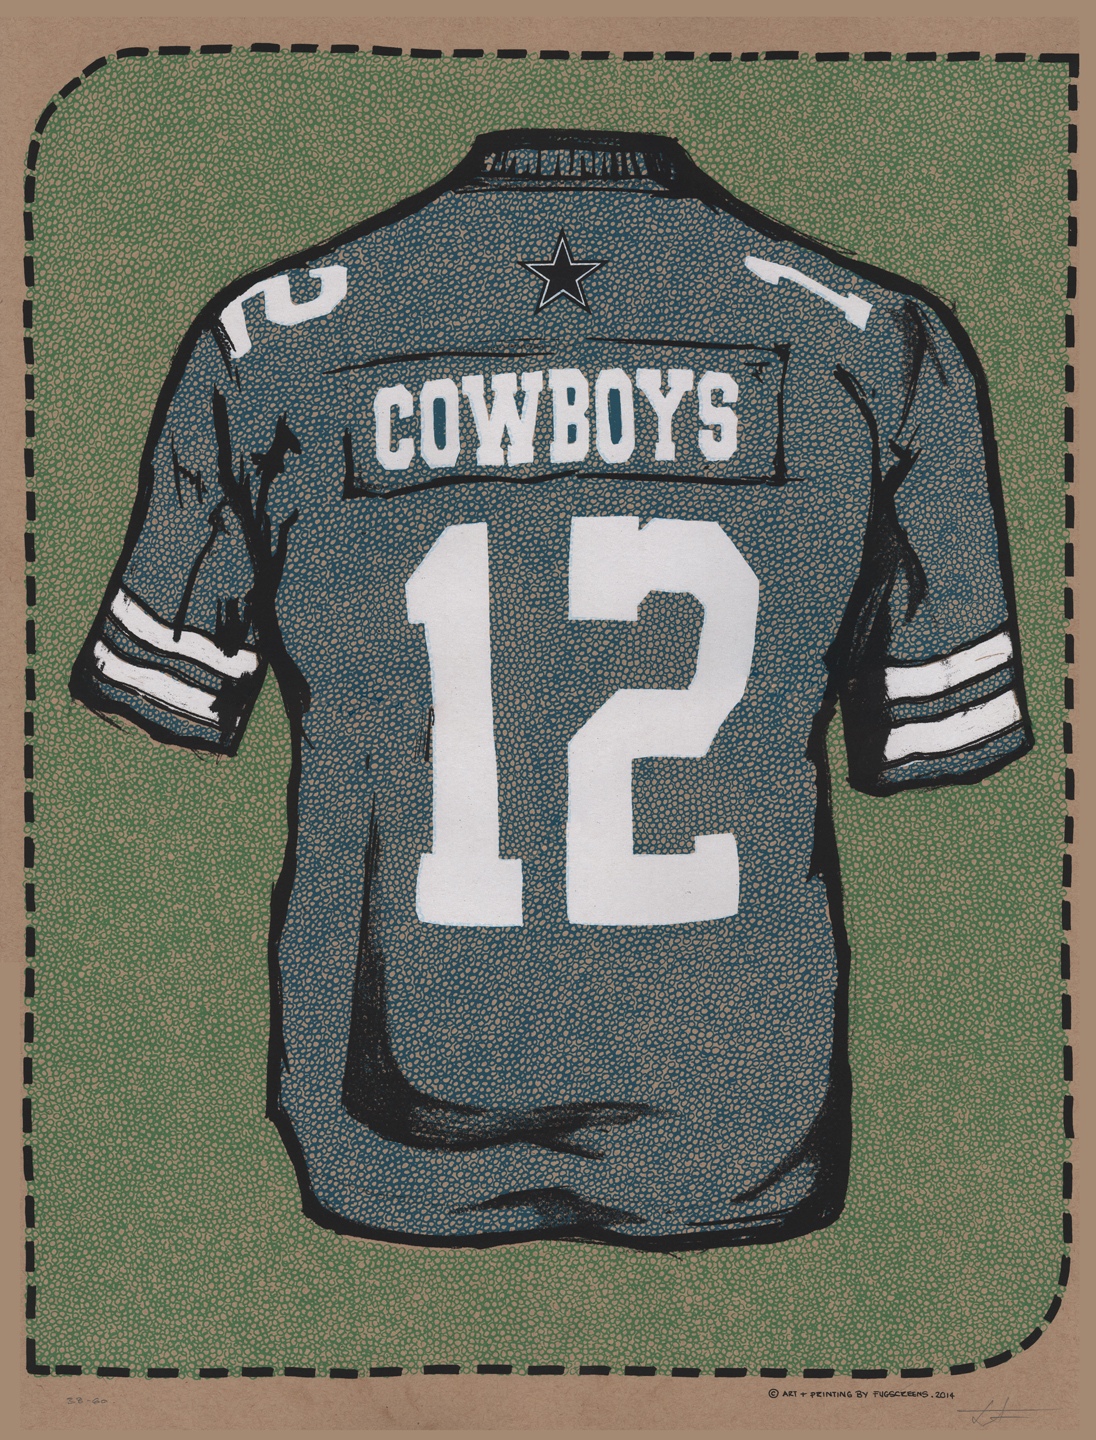 """Dallas Cowboys by FugScreens Studios. Edition of 75 S/N 18x24 five layer screen print with metallic ink"